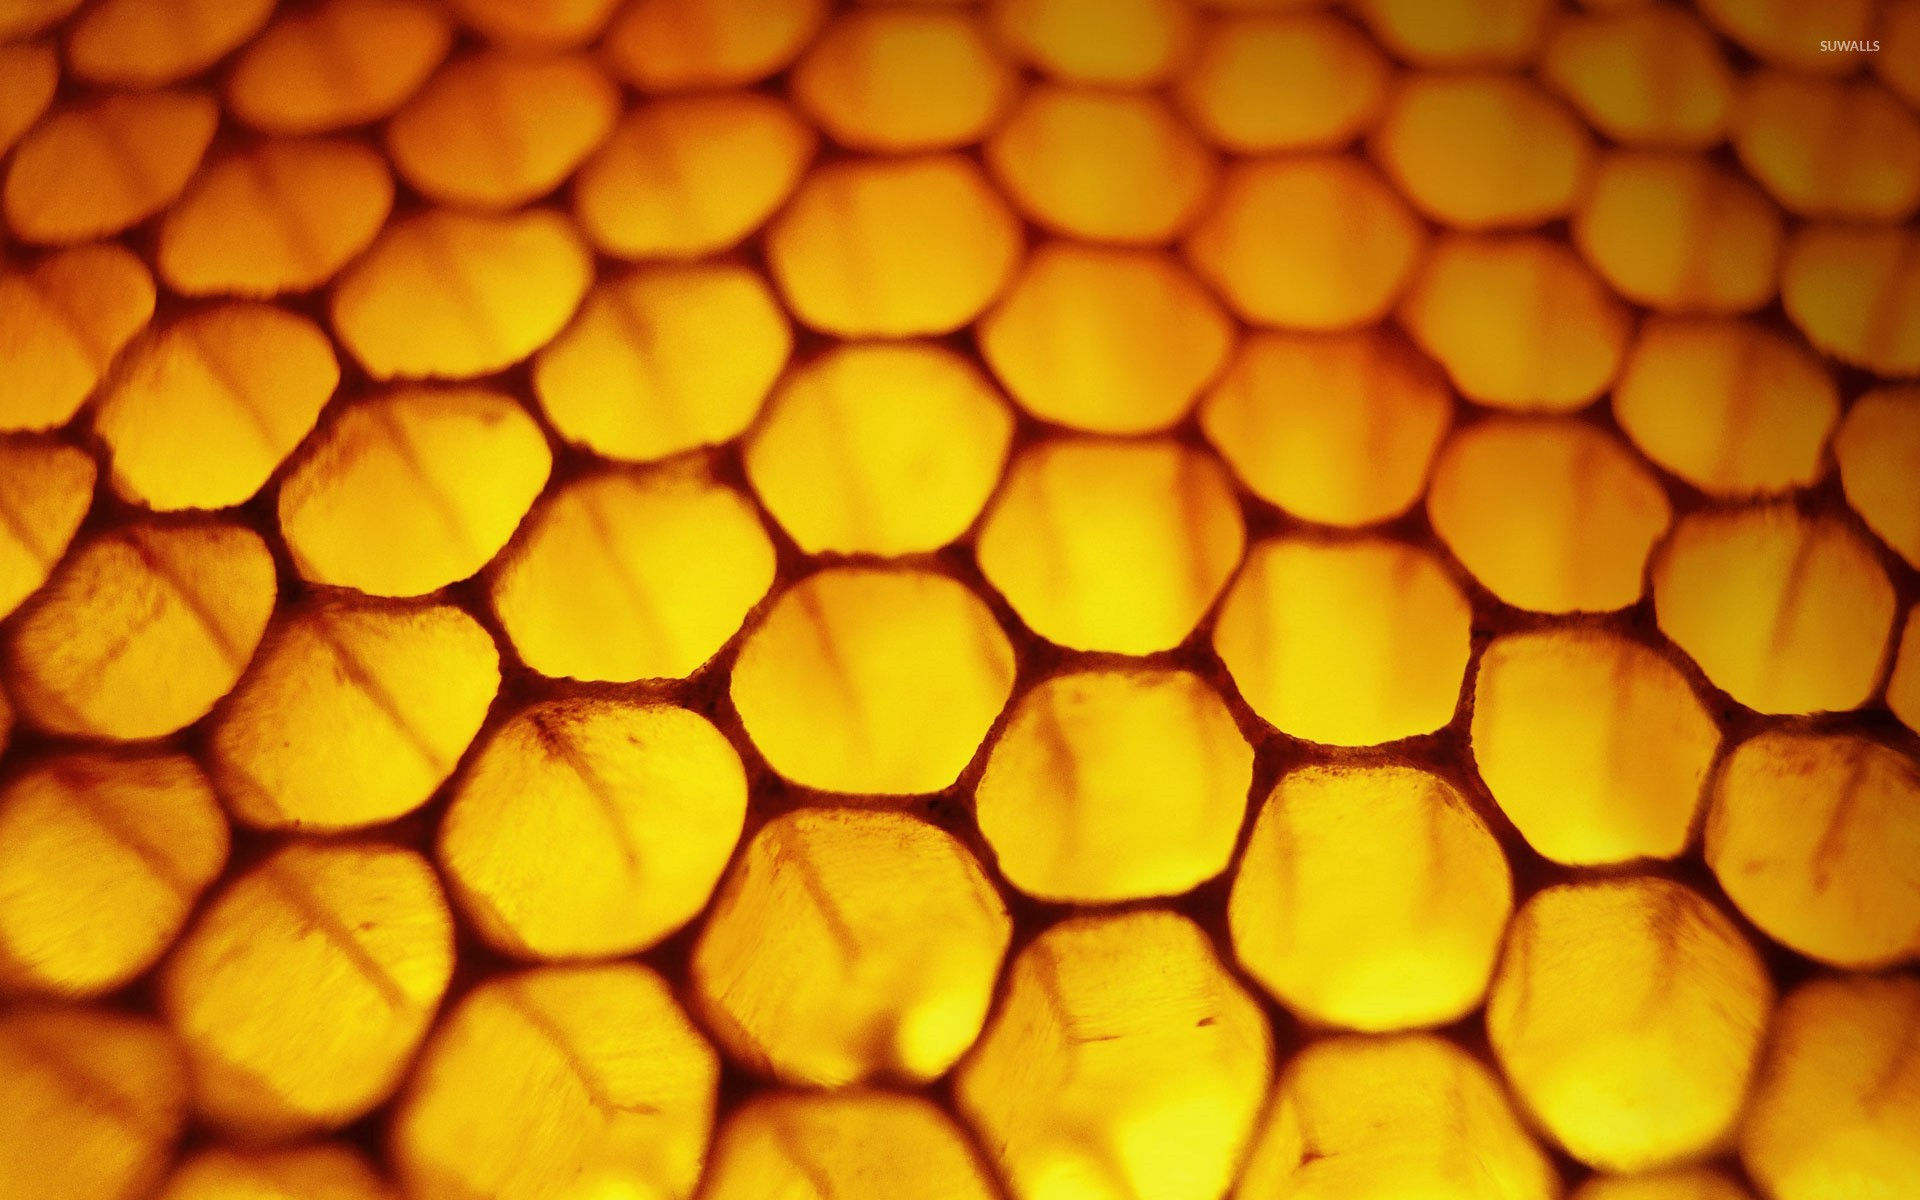 Honeycomb wallpapers background images page 6 - 1920x1200 Honeycomb Wallpaper 1920x1200 Jpg